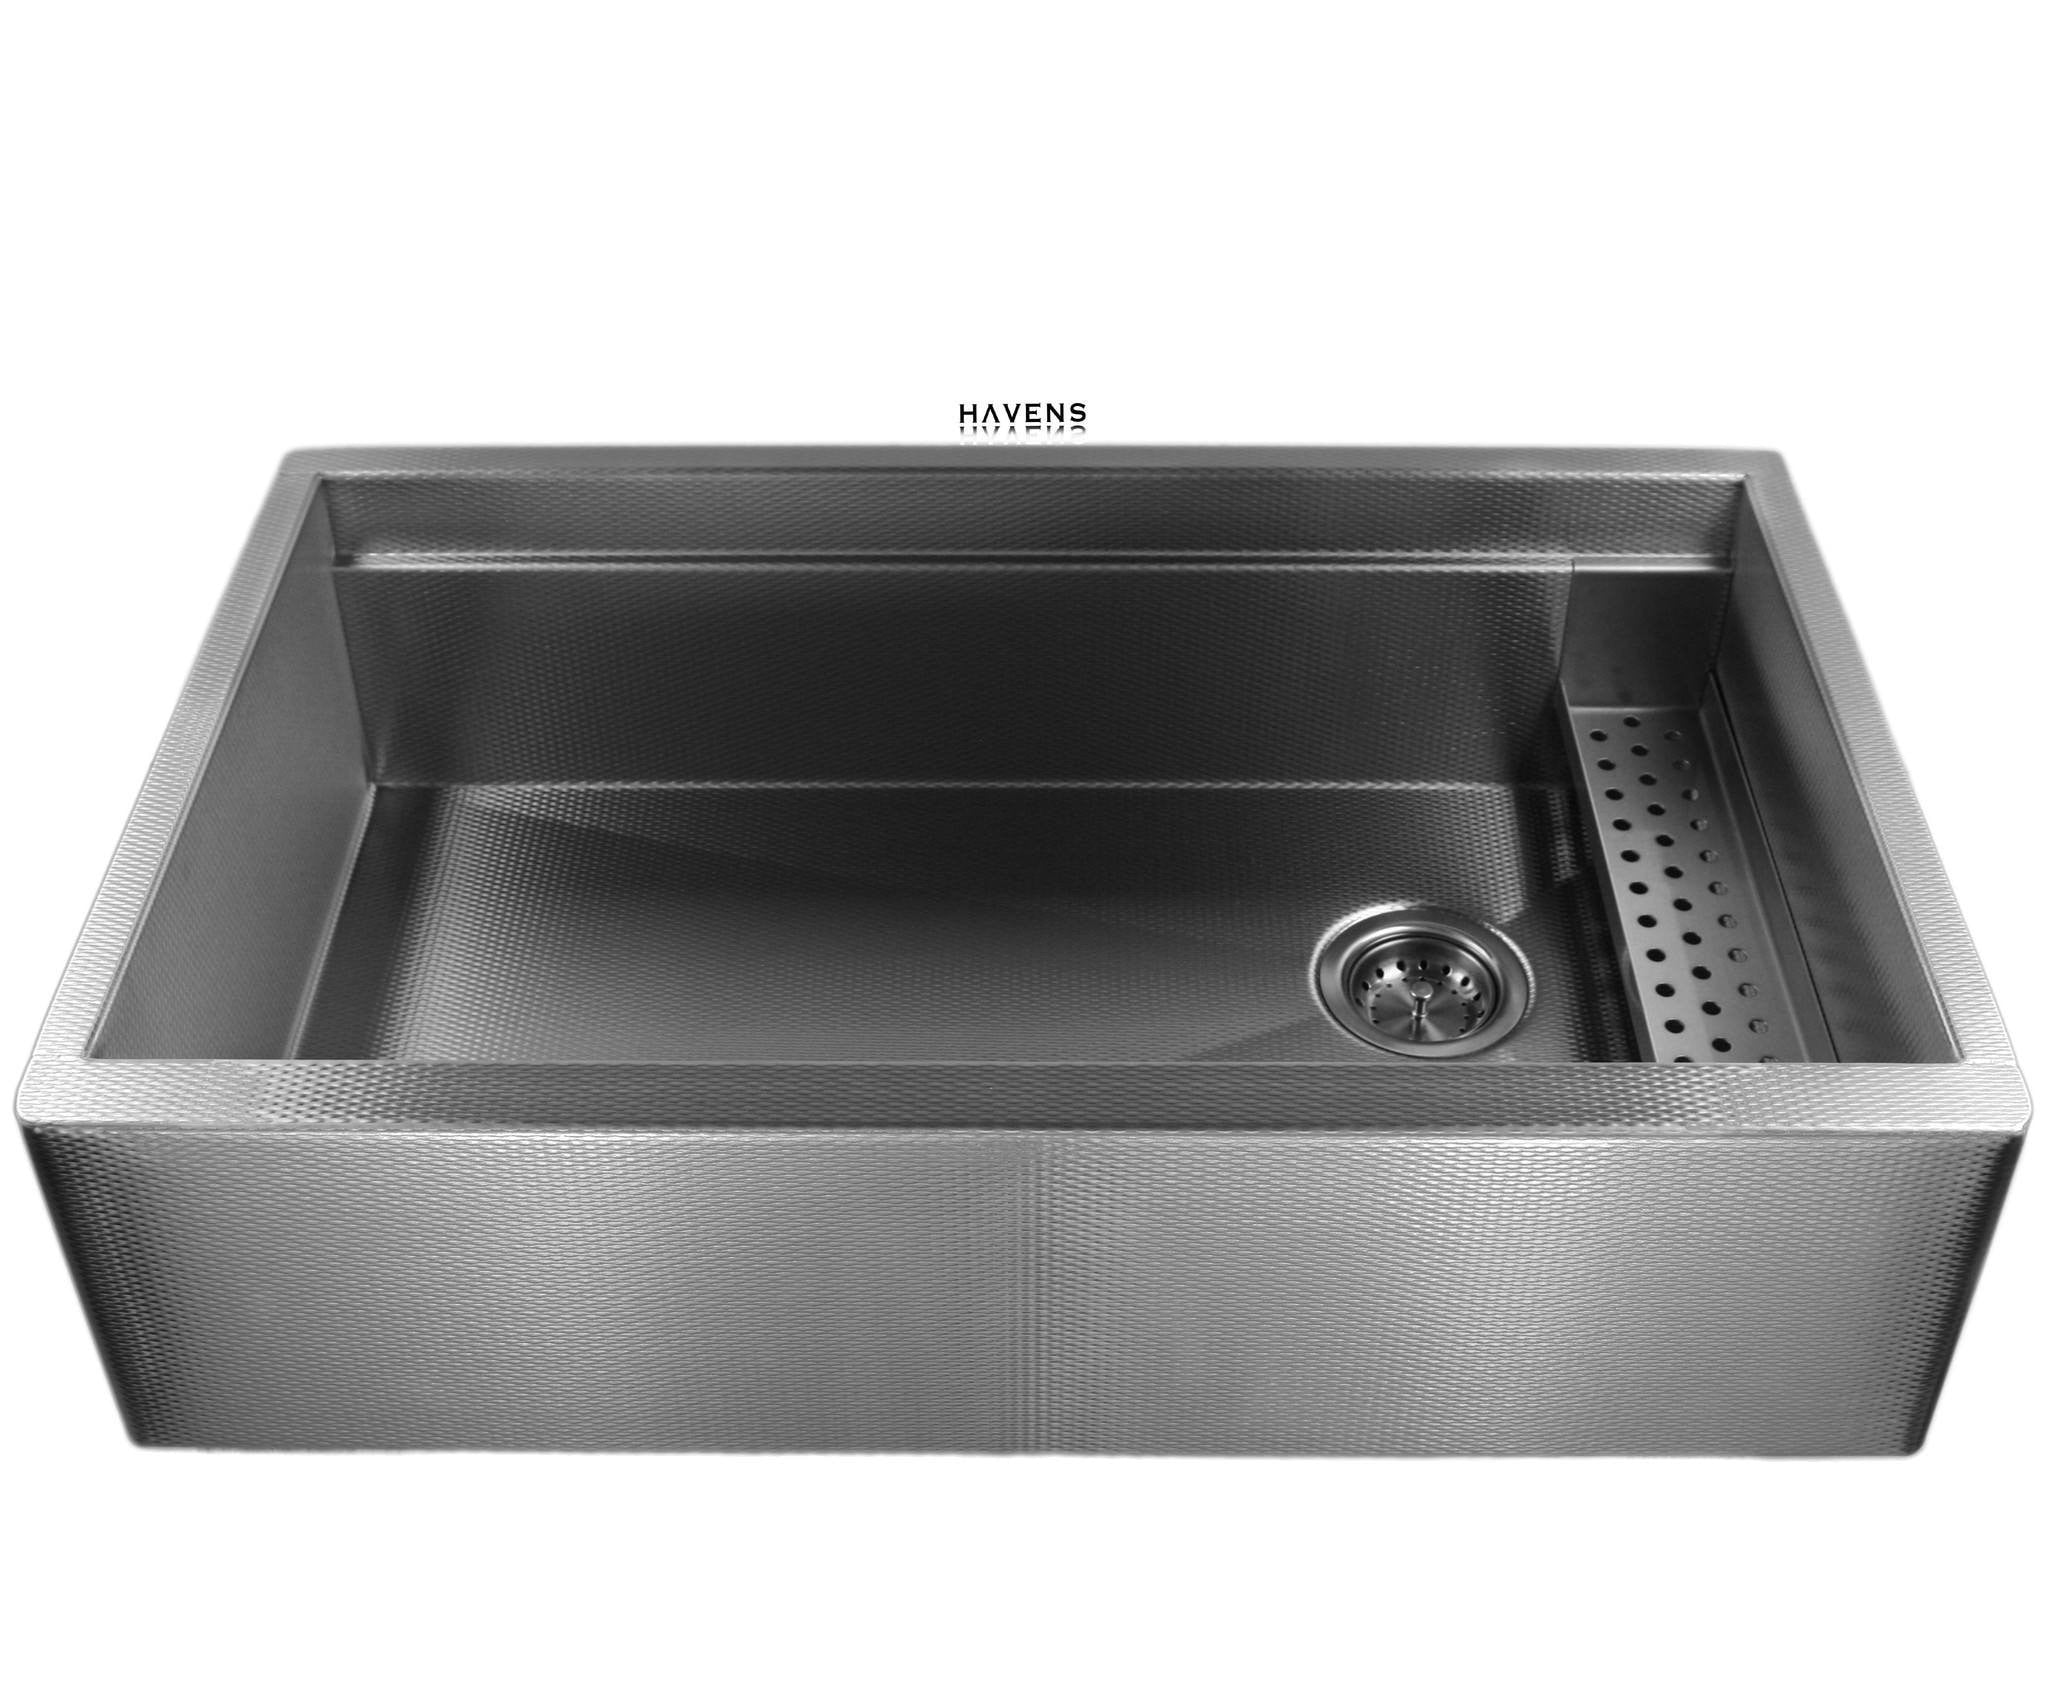 Legacy Stainless steel sink w/ sponge caddy